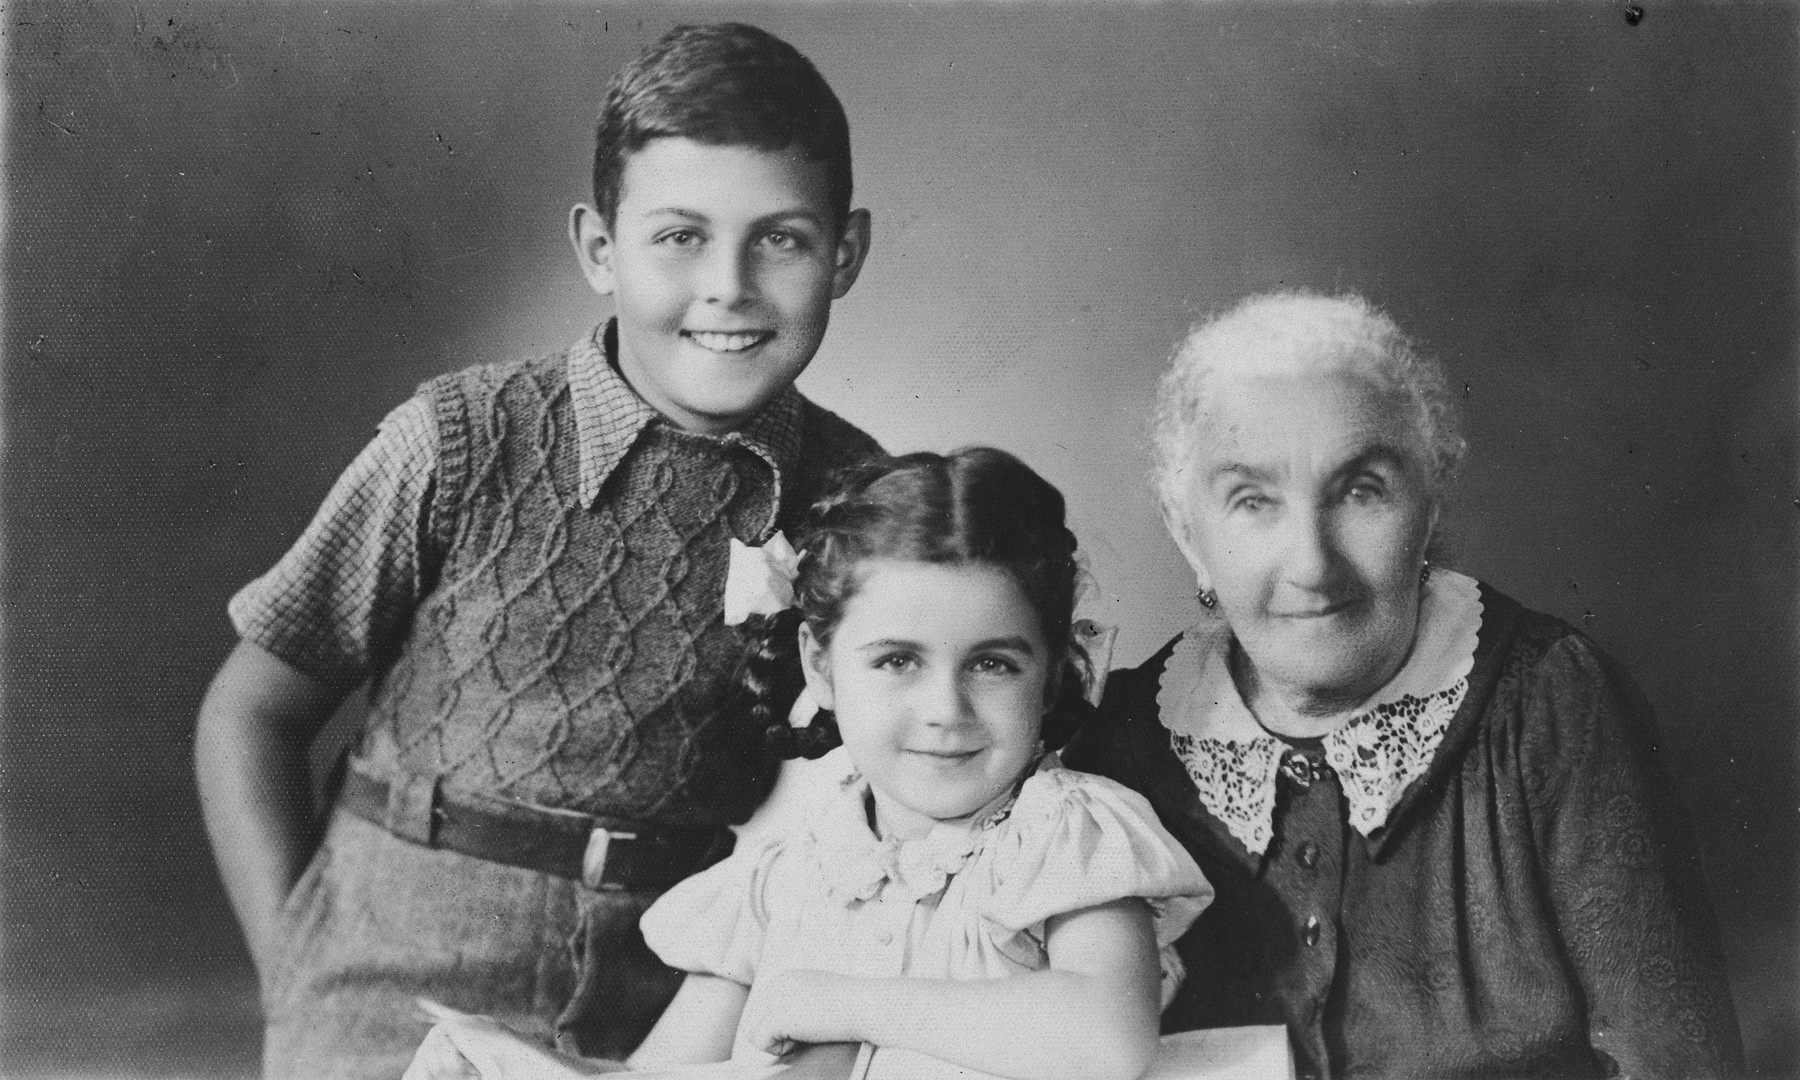 Portrait of the Ponevejsky family in Shanghai.  Pictured is the mother of Anatole Ponevejsky together with Greg and Mona, the children of his sister.